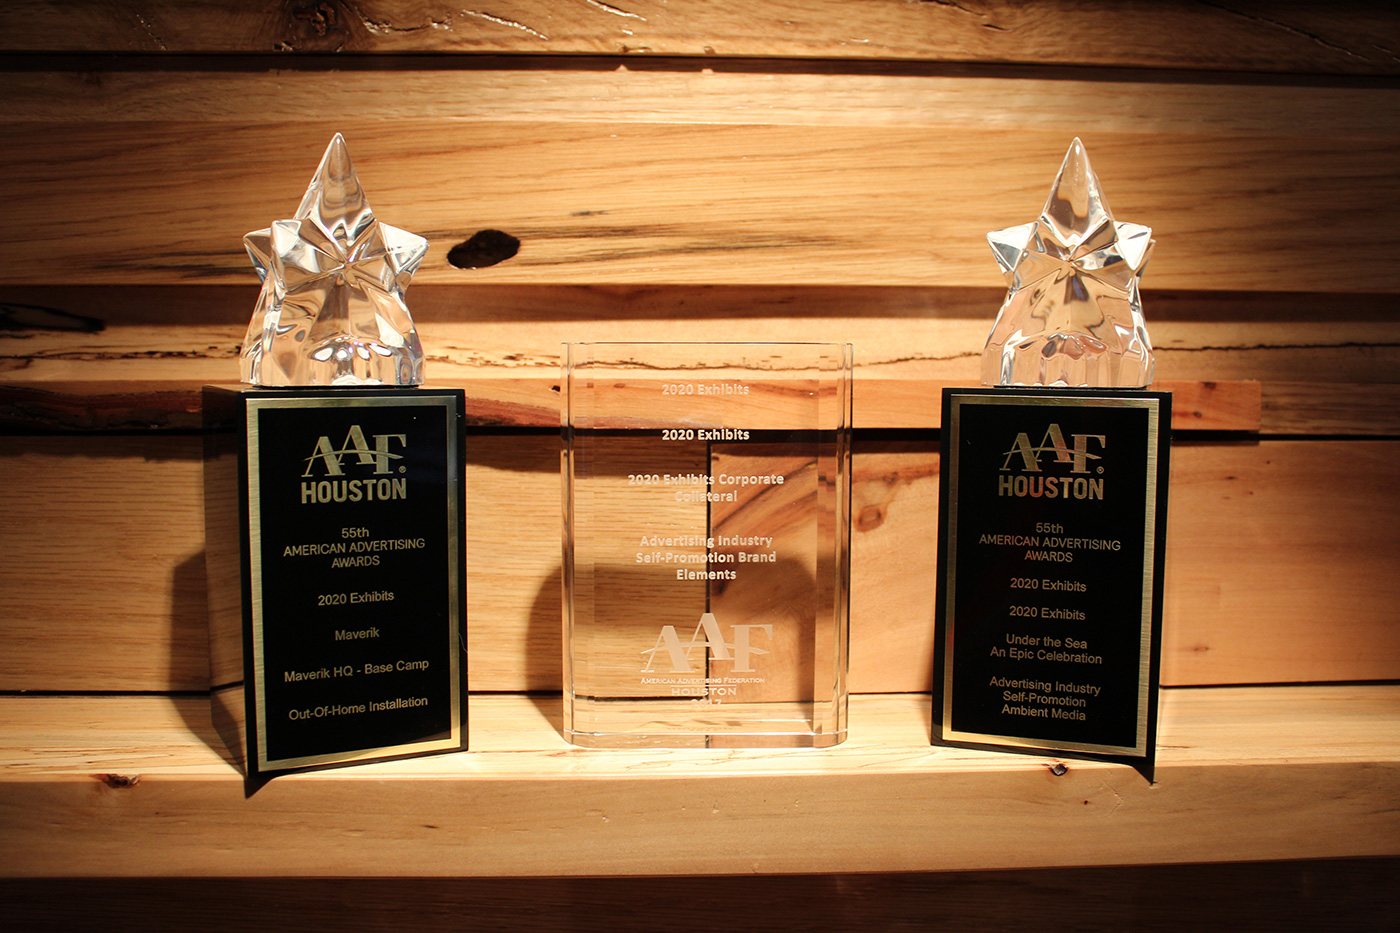 2020 Exhibits Wins Gold and Silver ADDYs at the 2017 American Ad Federation ADDY Awards